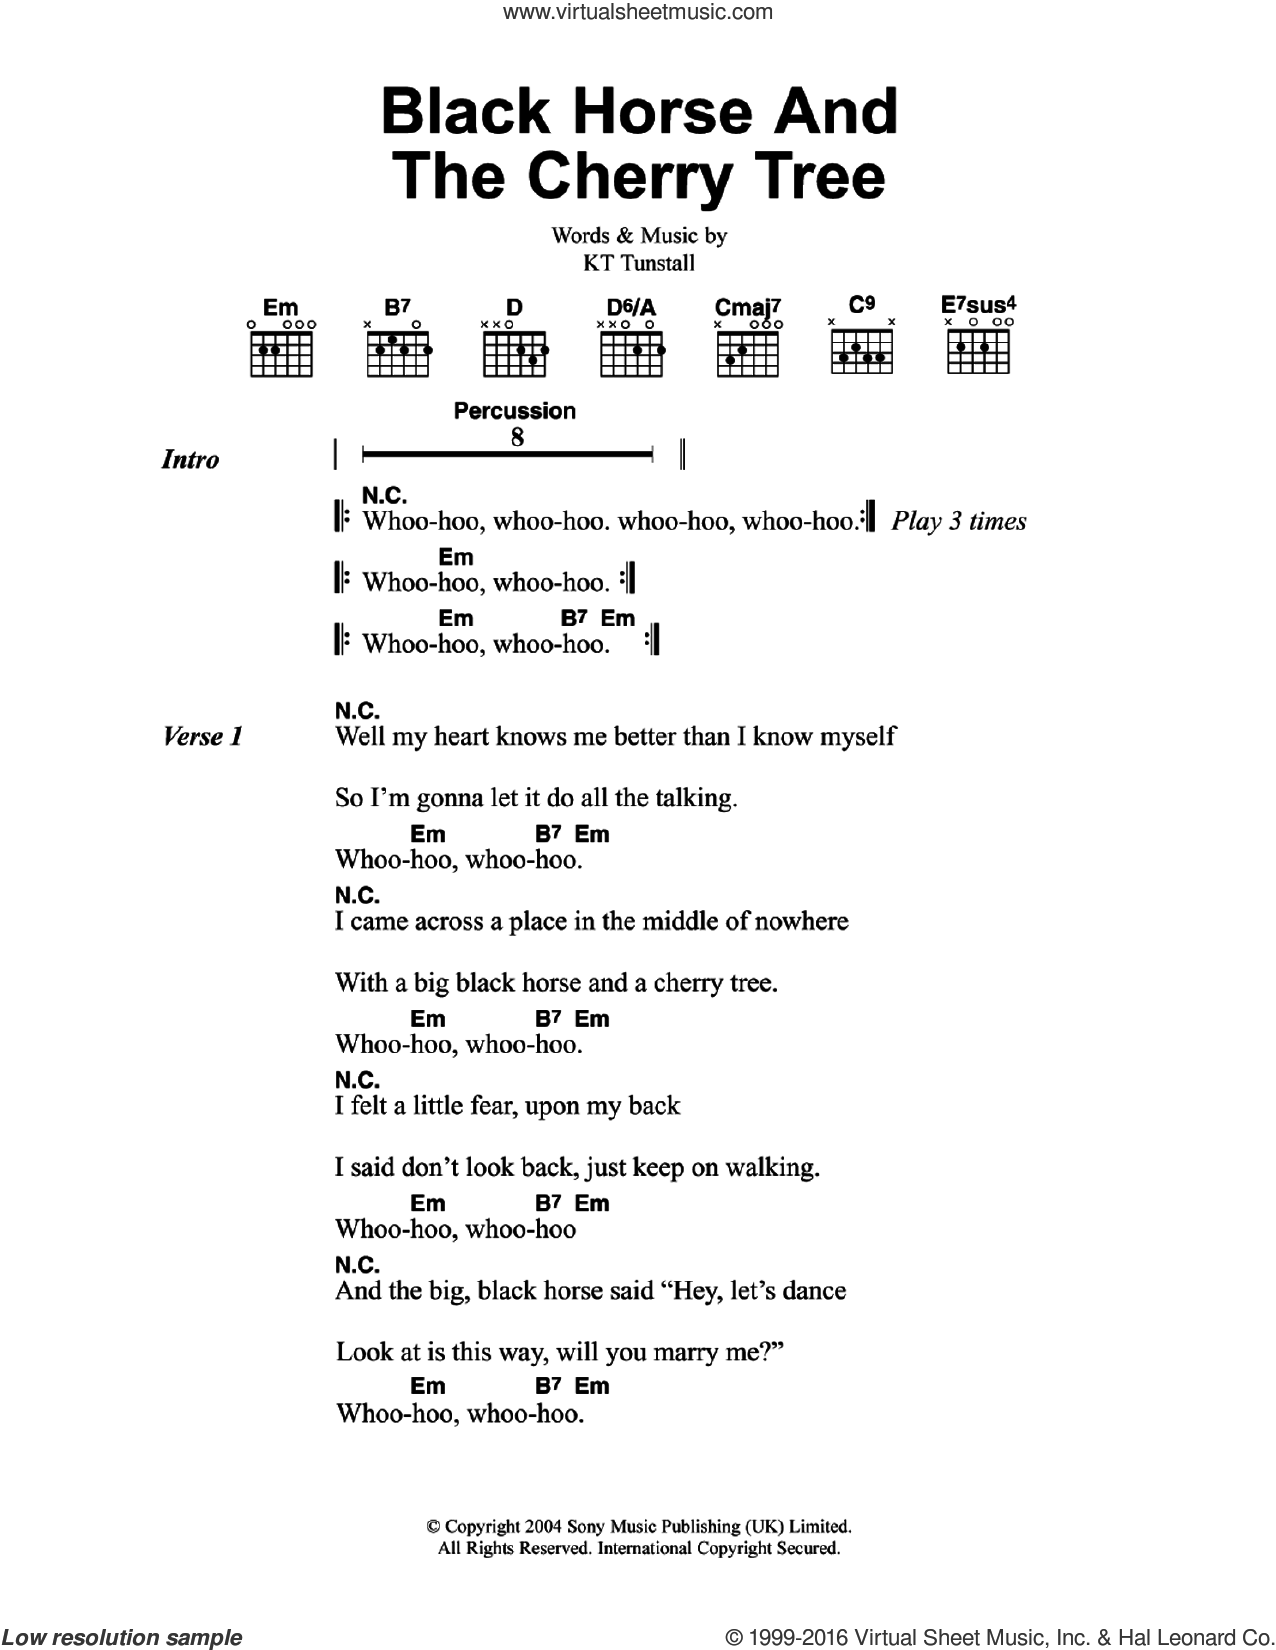 Black Horse And The Cherry Tree sheet music for guitar (chords) by KT Tunstall, intermediate. Score Image Preview.